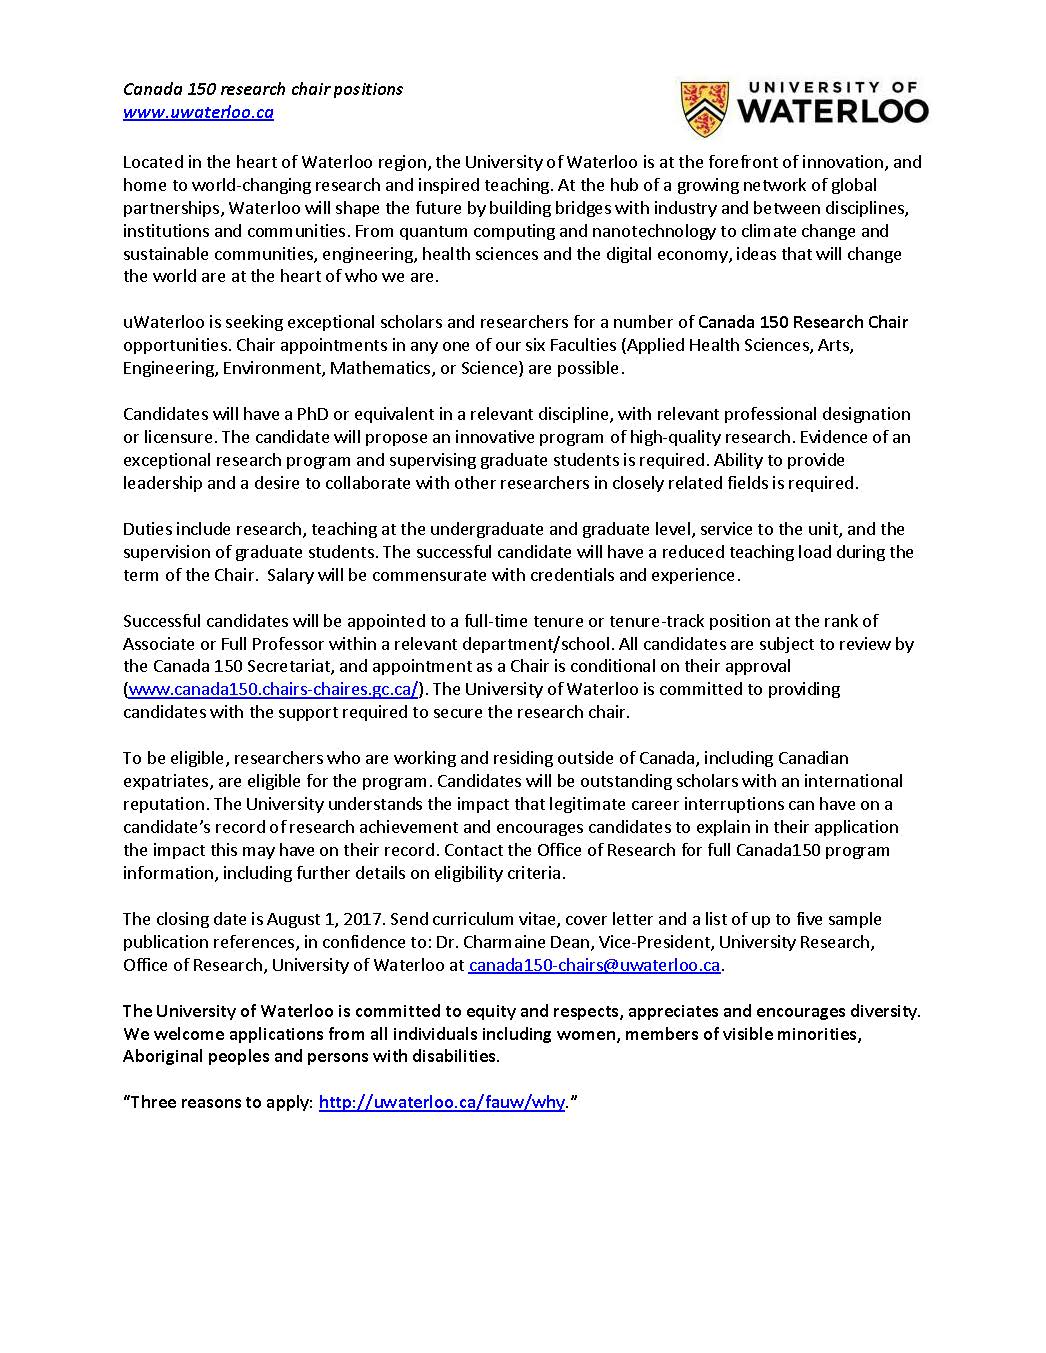 University Cover Letter University Of Waterloo Cover Letter Sample Andrian James Blog